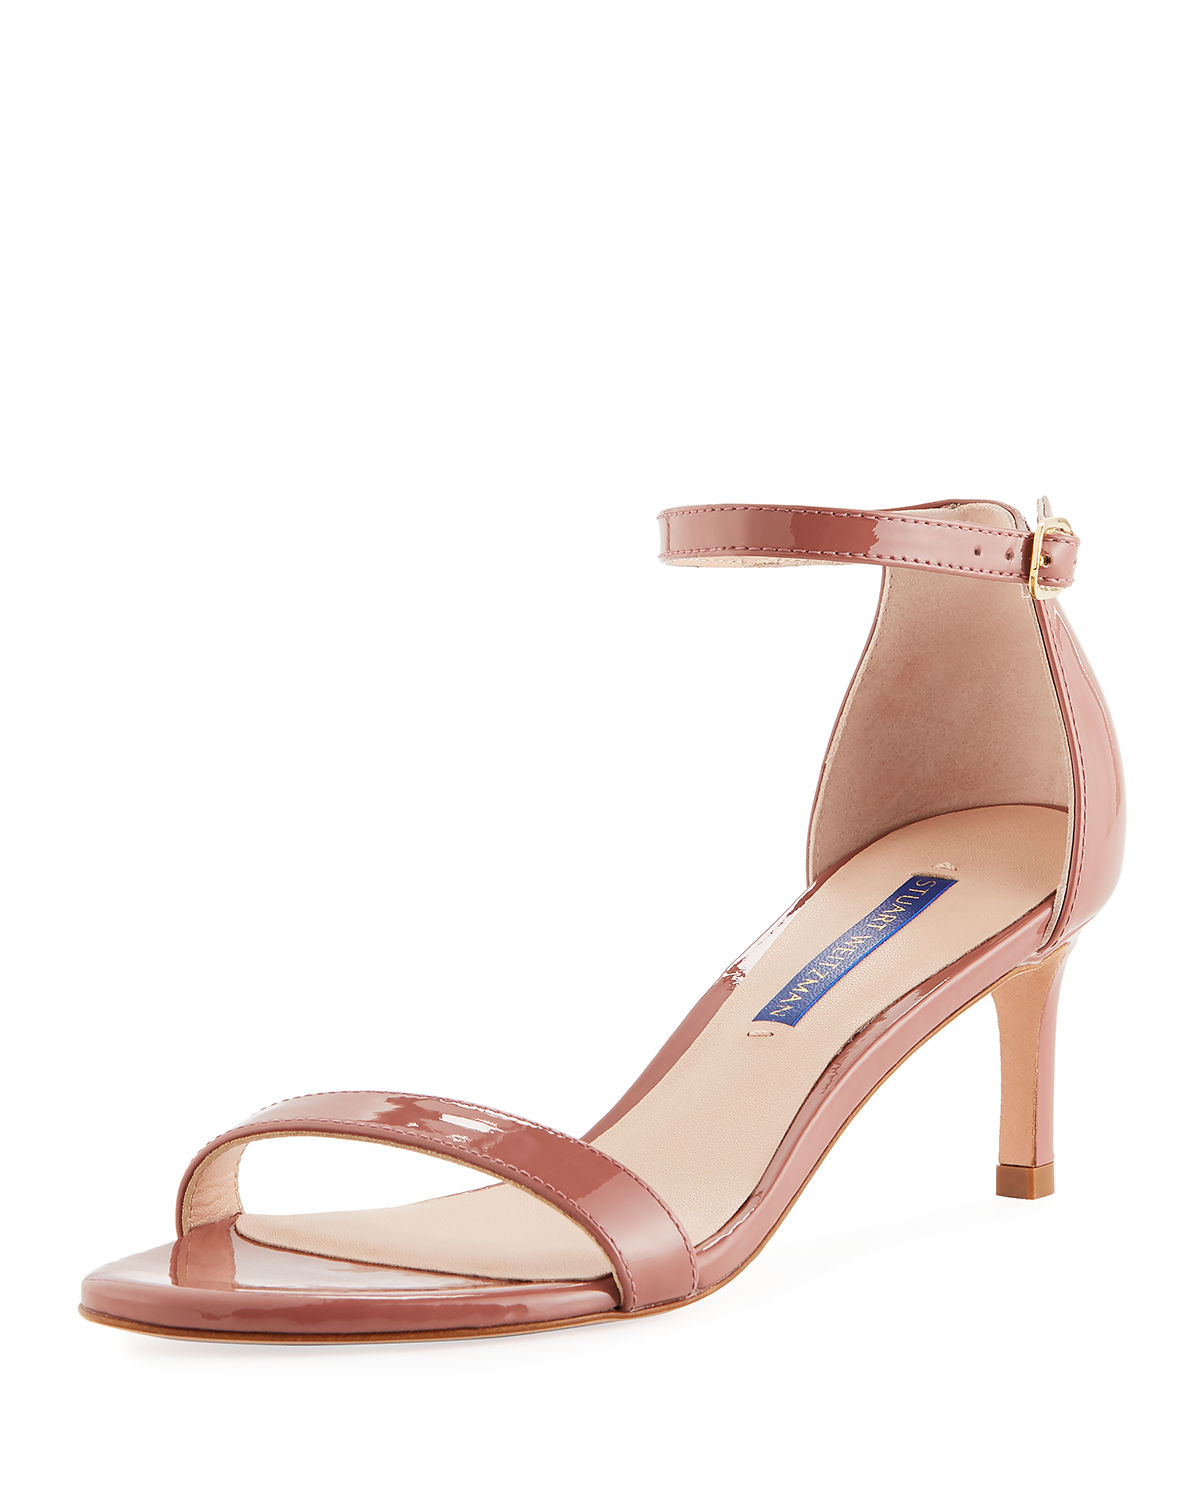 4ab299119e9a Stuart Weitzman Nunaked Straight Patent Leather Sandals In Rose Clay ...